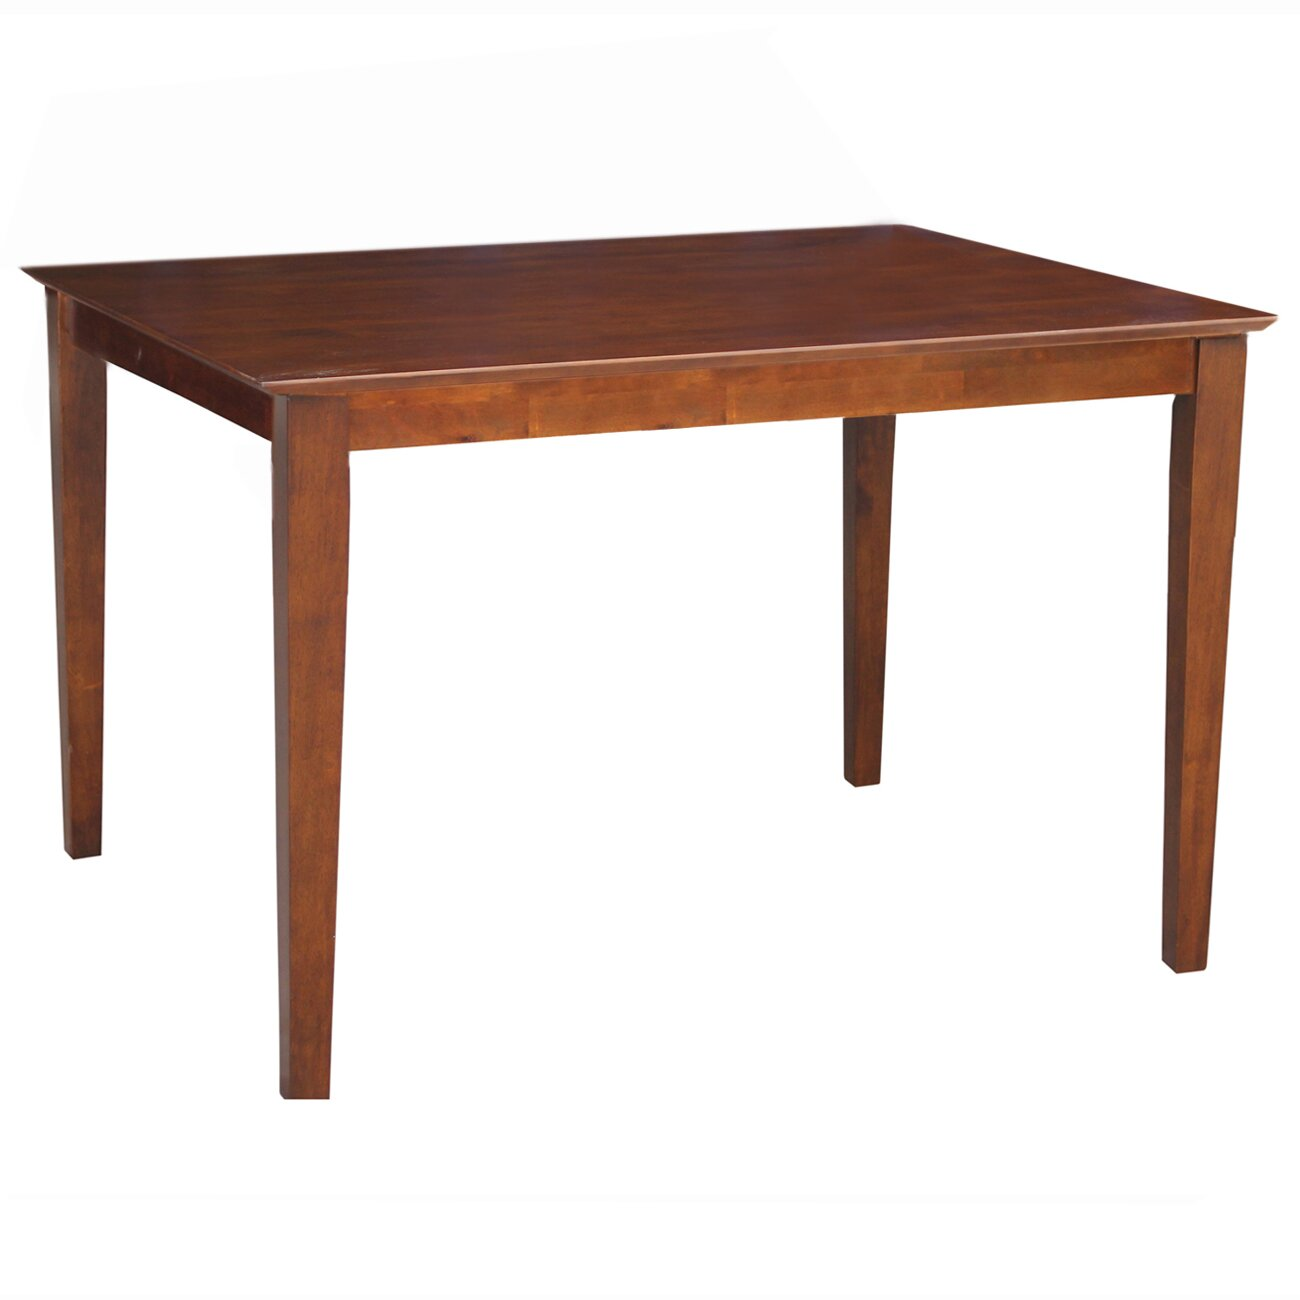 International Concepts Dining Table Reviews Wayfair Supply